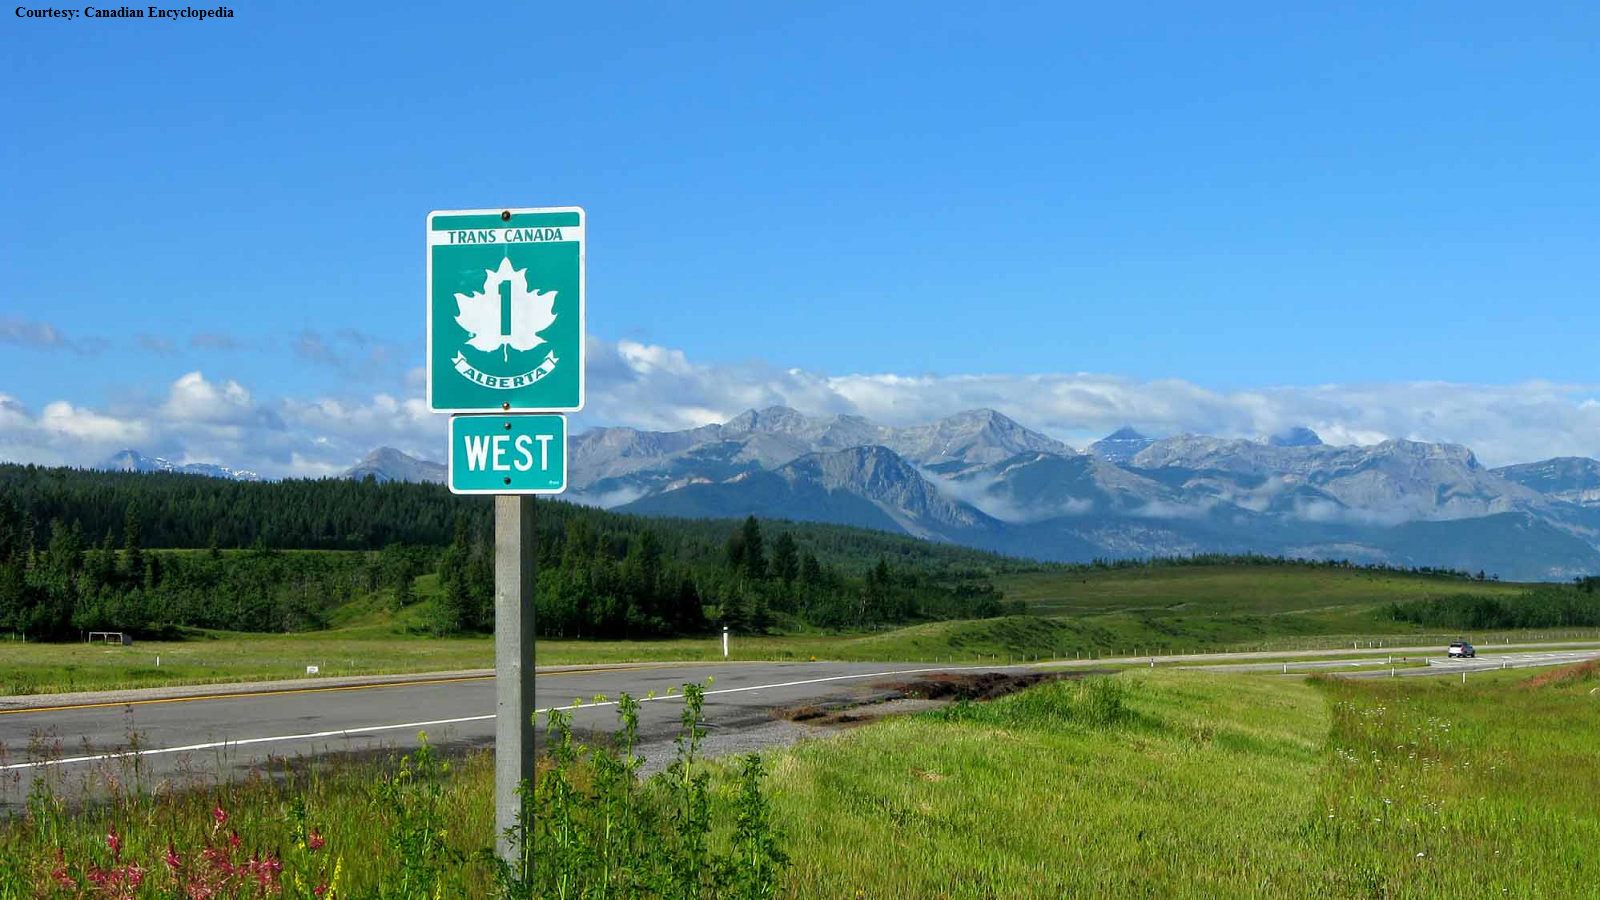 Trans-Canada Highway is a Biker's Dream